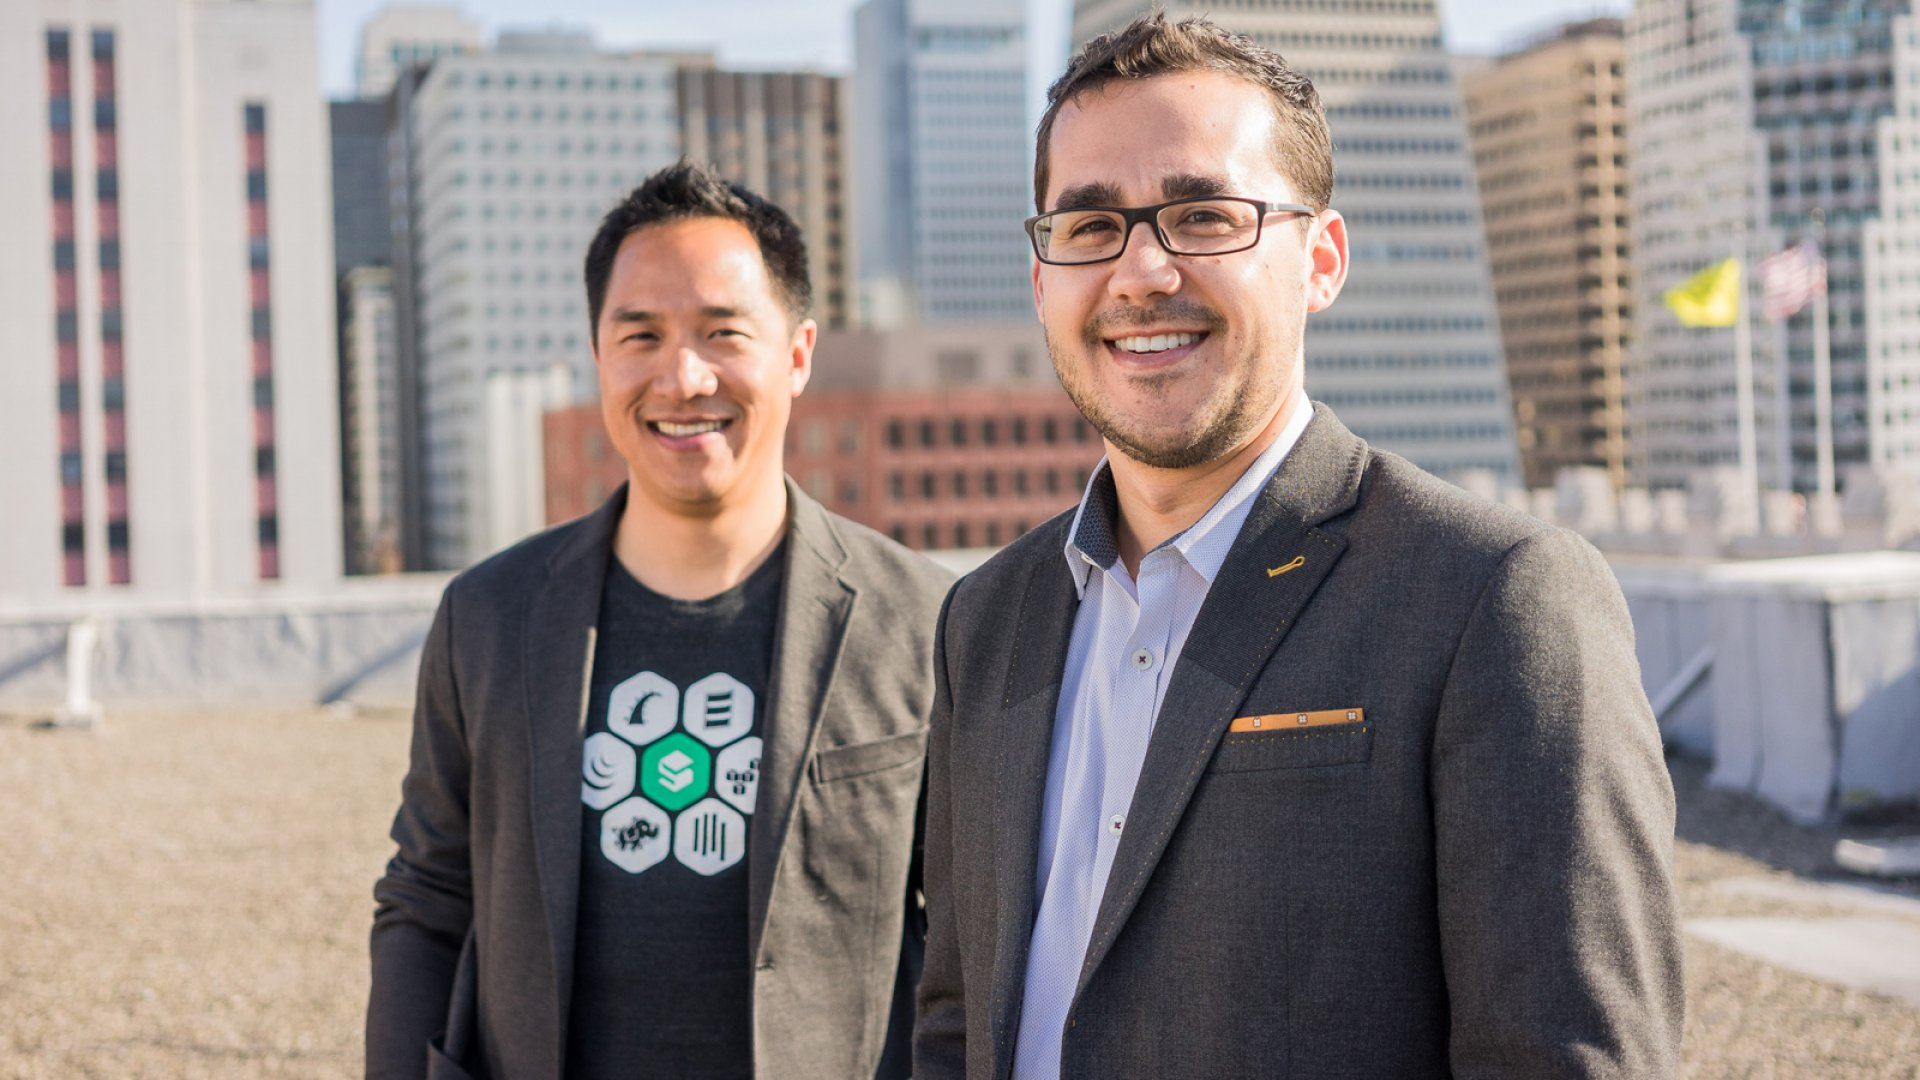 Rob Fan (left) and Dan Greenberg (right) have taken on the monstrous task of monetizing the Internet. With native advertising software, the duo hopes to create an online world in which advertisers and publishers make money without disrupting the user experience. <br> <br>